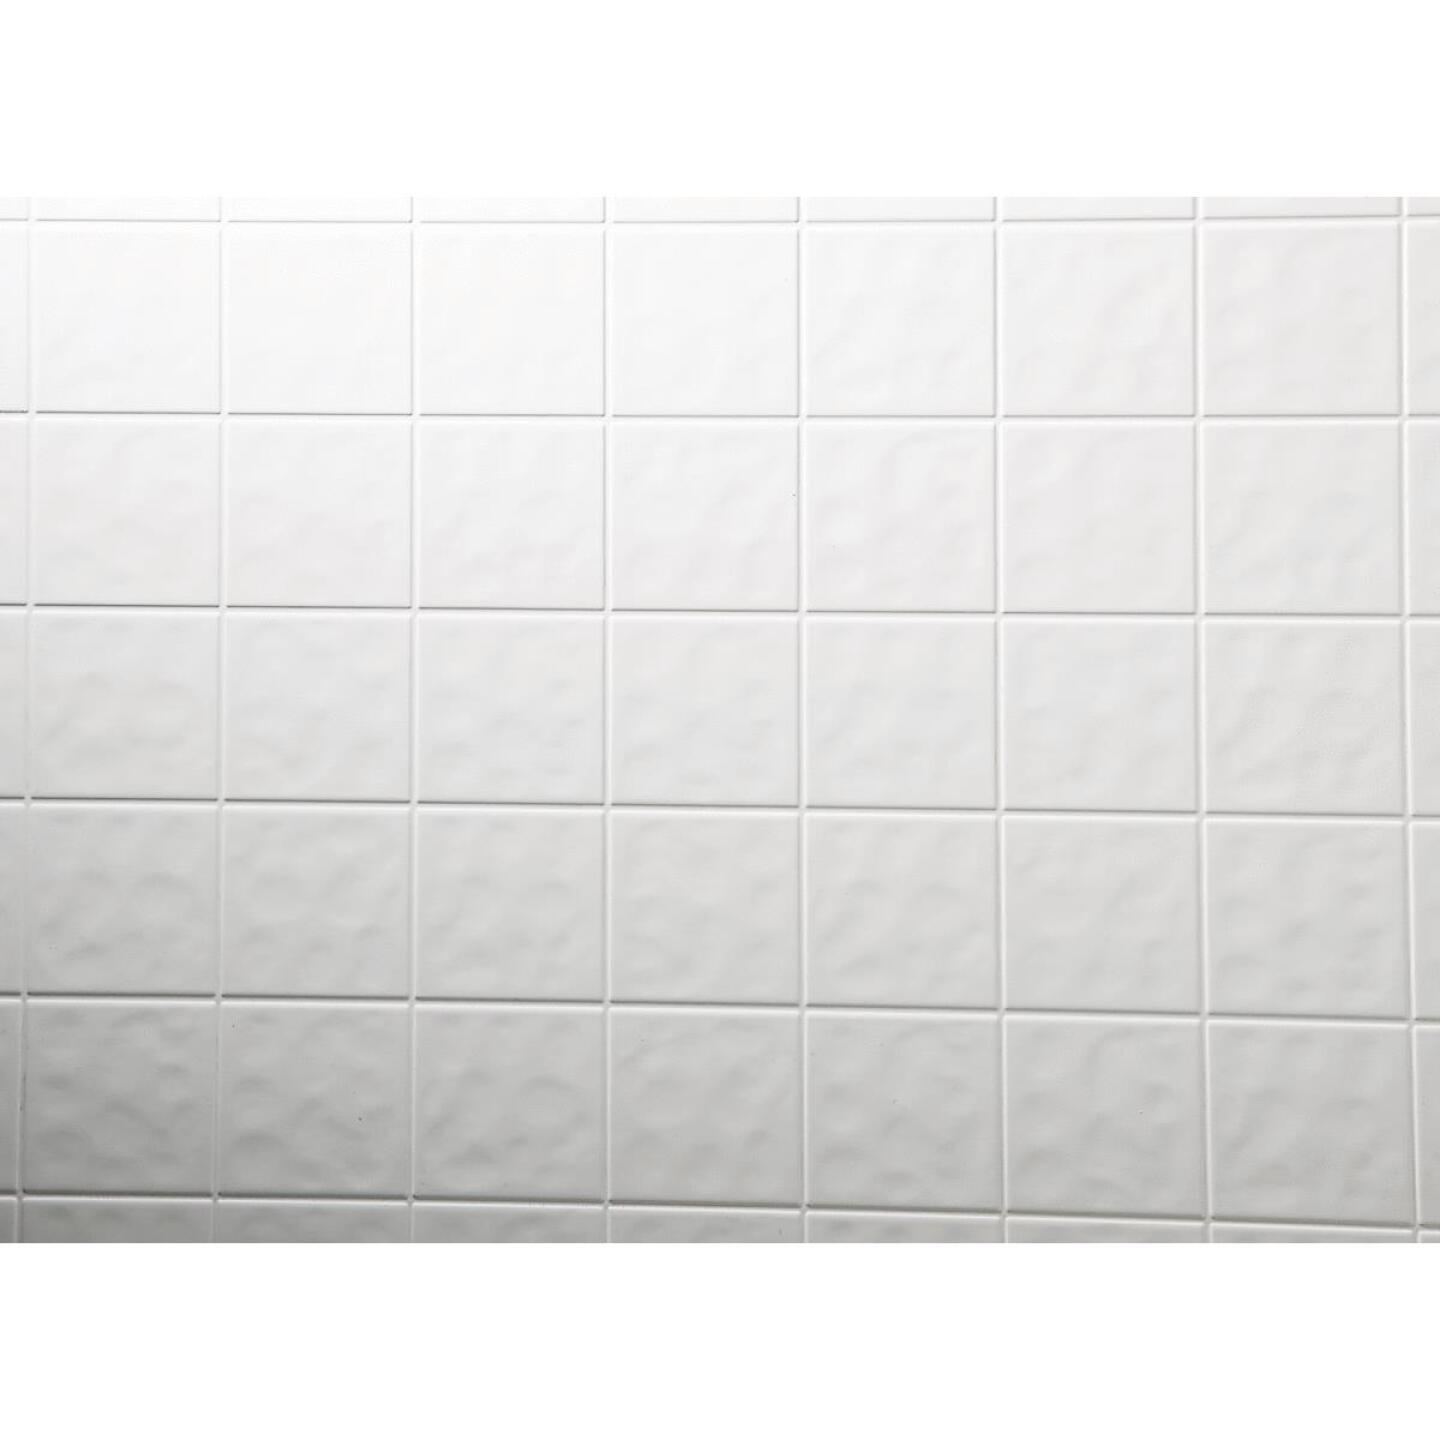 DPI AquaTile 4 Ft. x 8 Ft. x 1/8 In. White Tileboard Wall Paneling Image 1